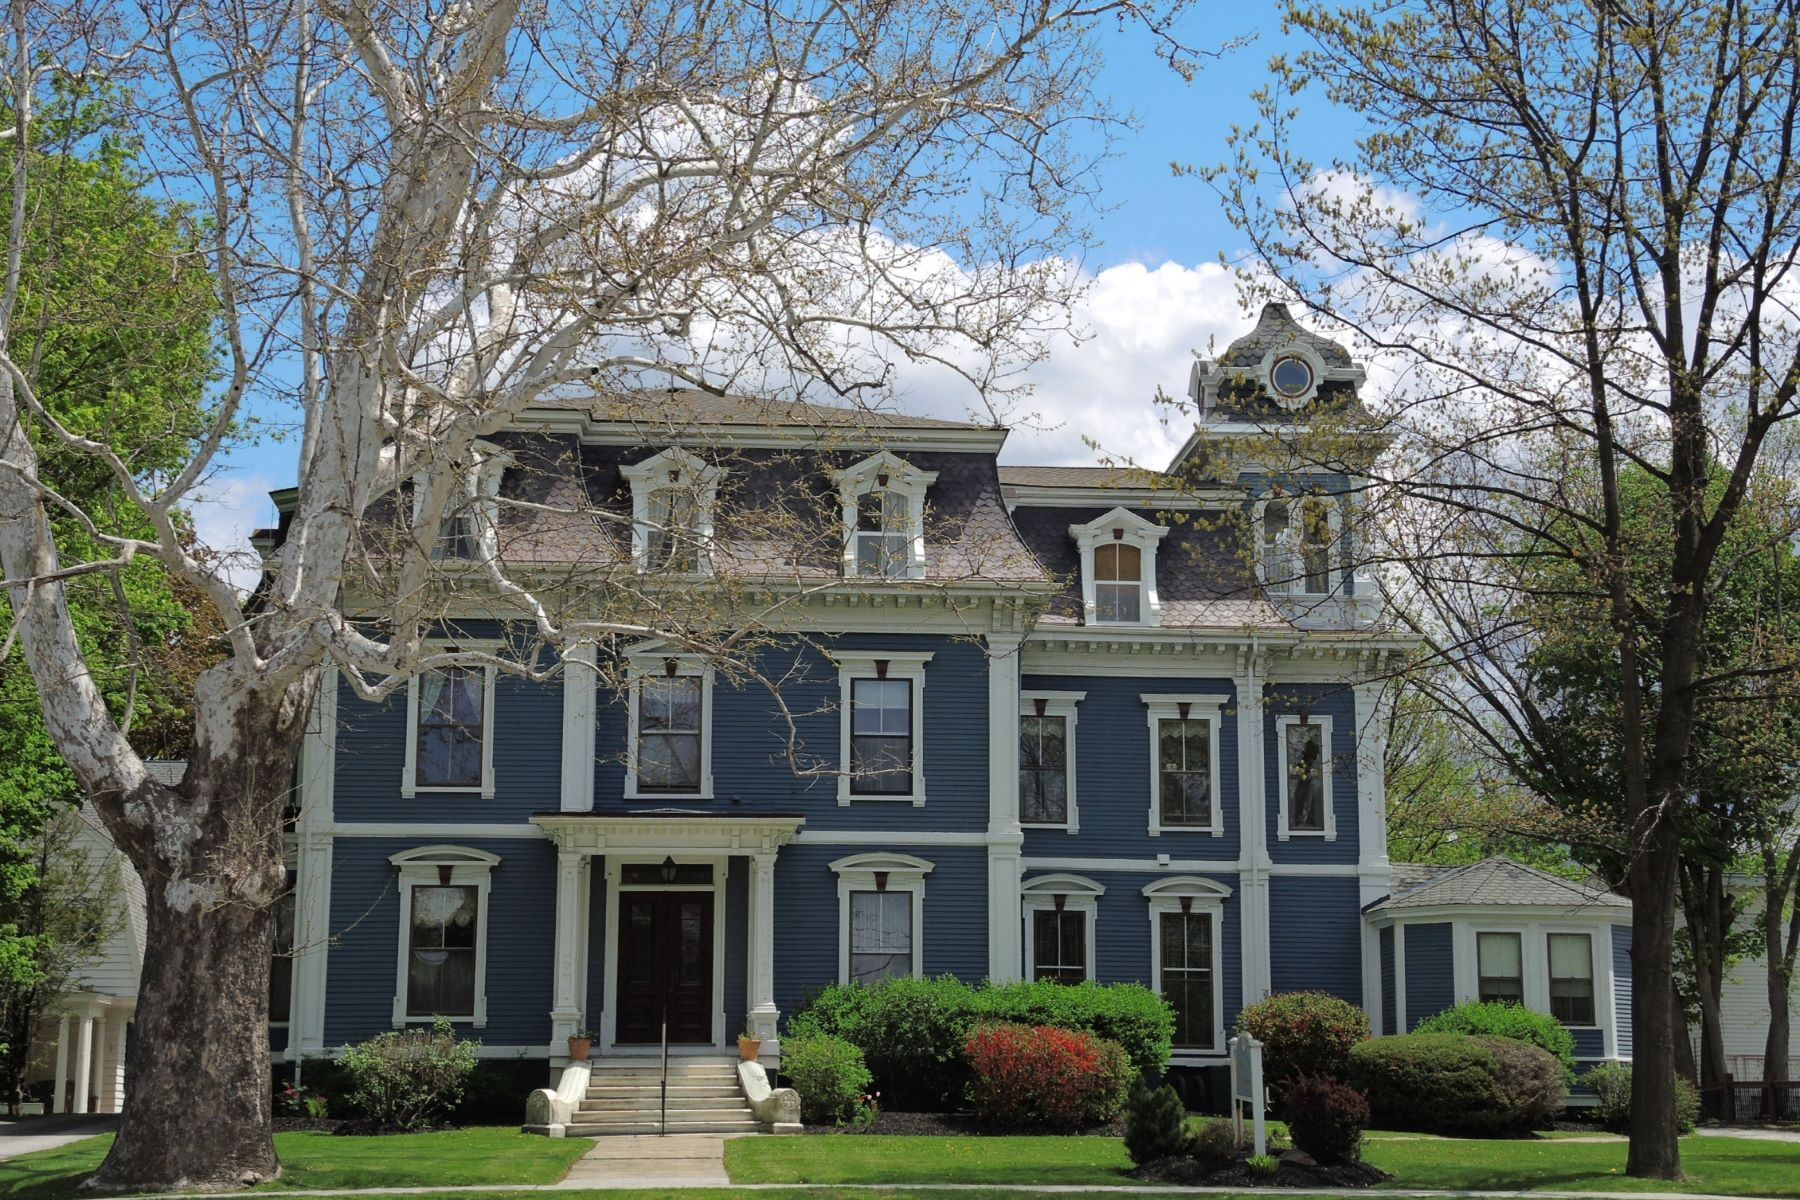 Condominiums for Sale at Classic Elegance 24 South Main St 1 Rutland, Vermont 05701 United States